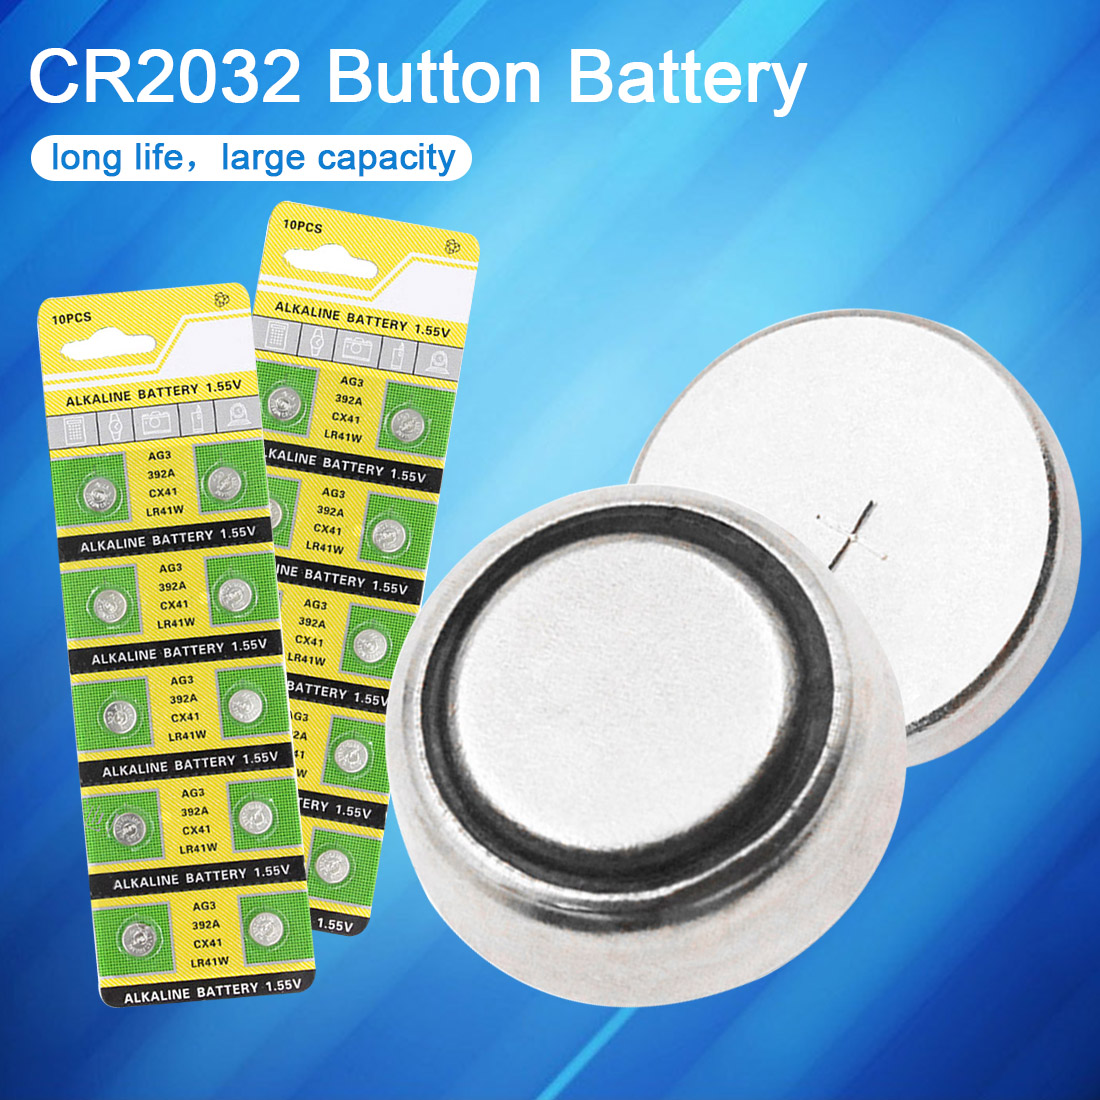 20PCS AG3 Button Battery 1.55V 42mAh Watch Batteries 384 392 392A CX41 LR41 Coin Cell Lithium Battery for Remote Controls Toy